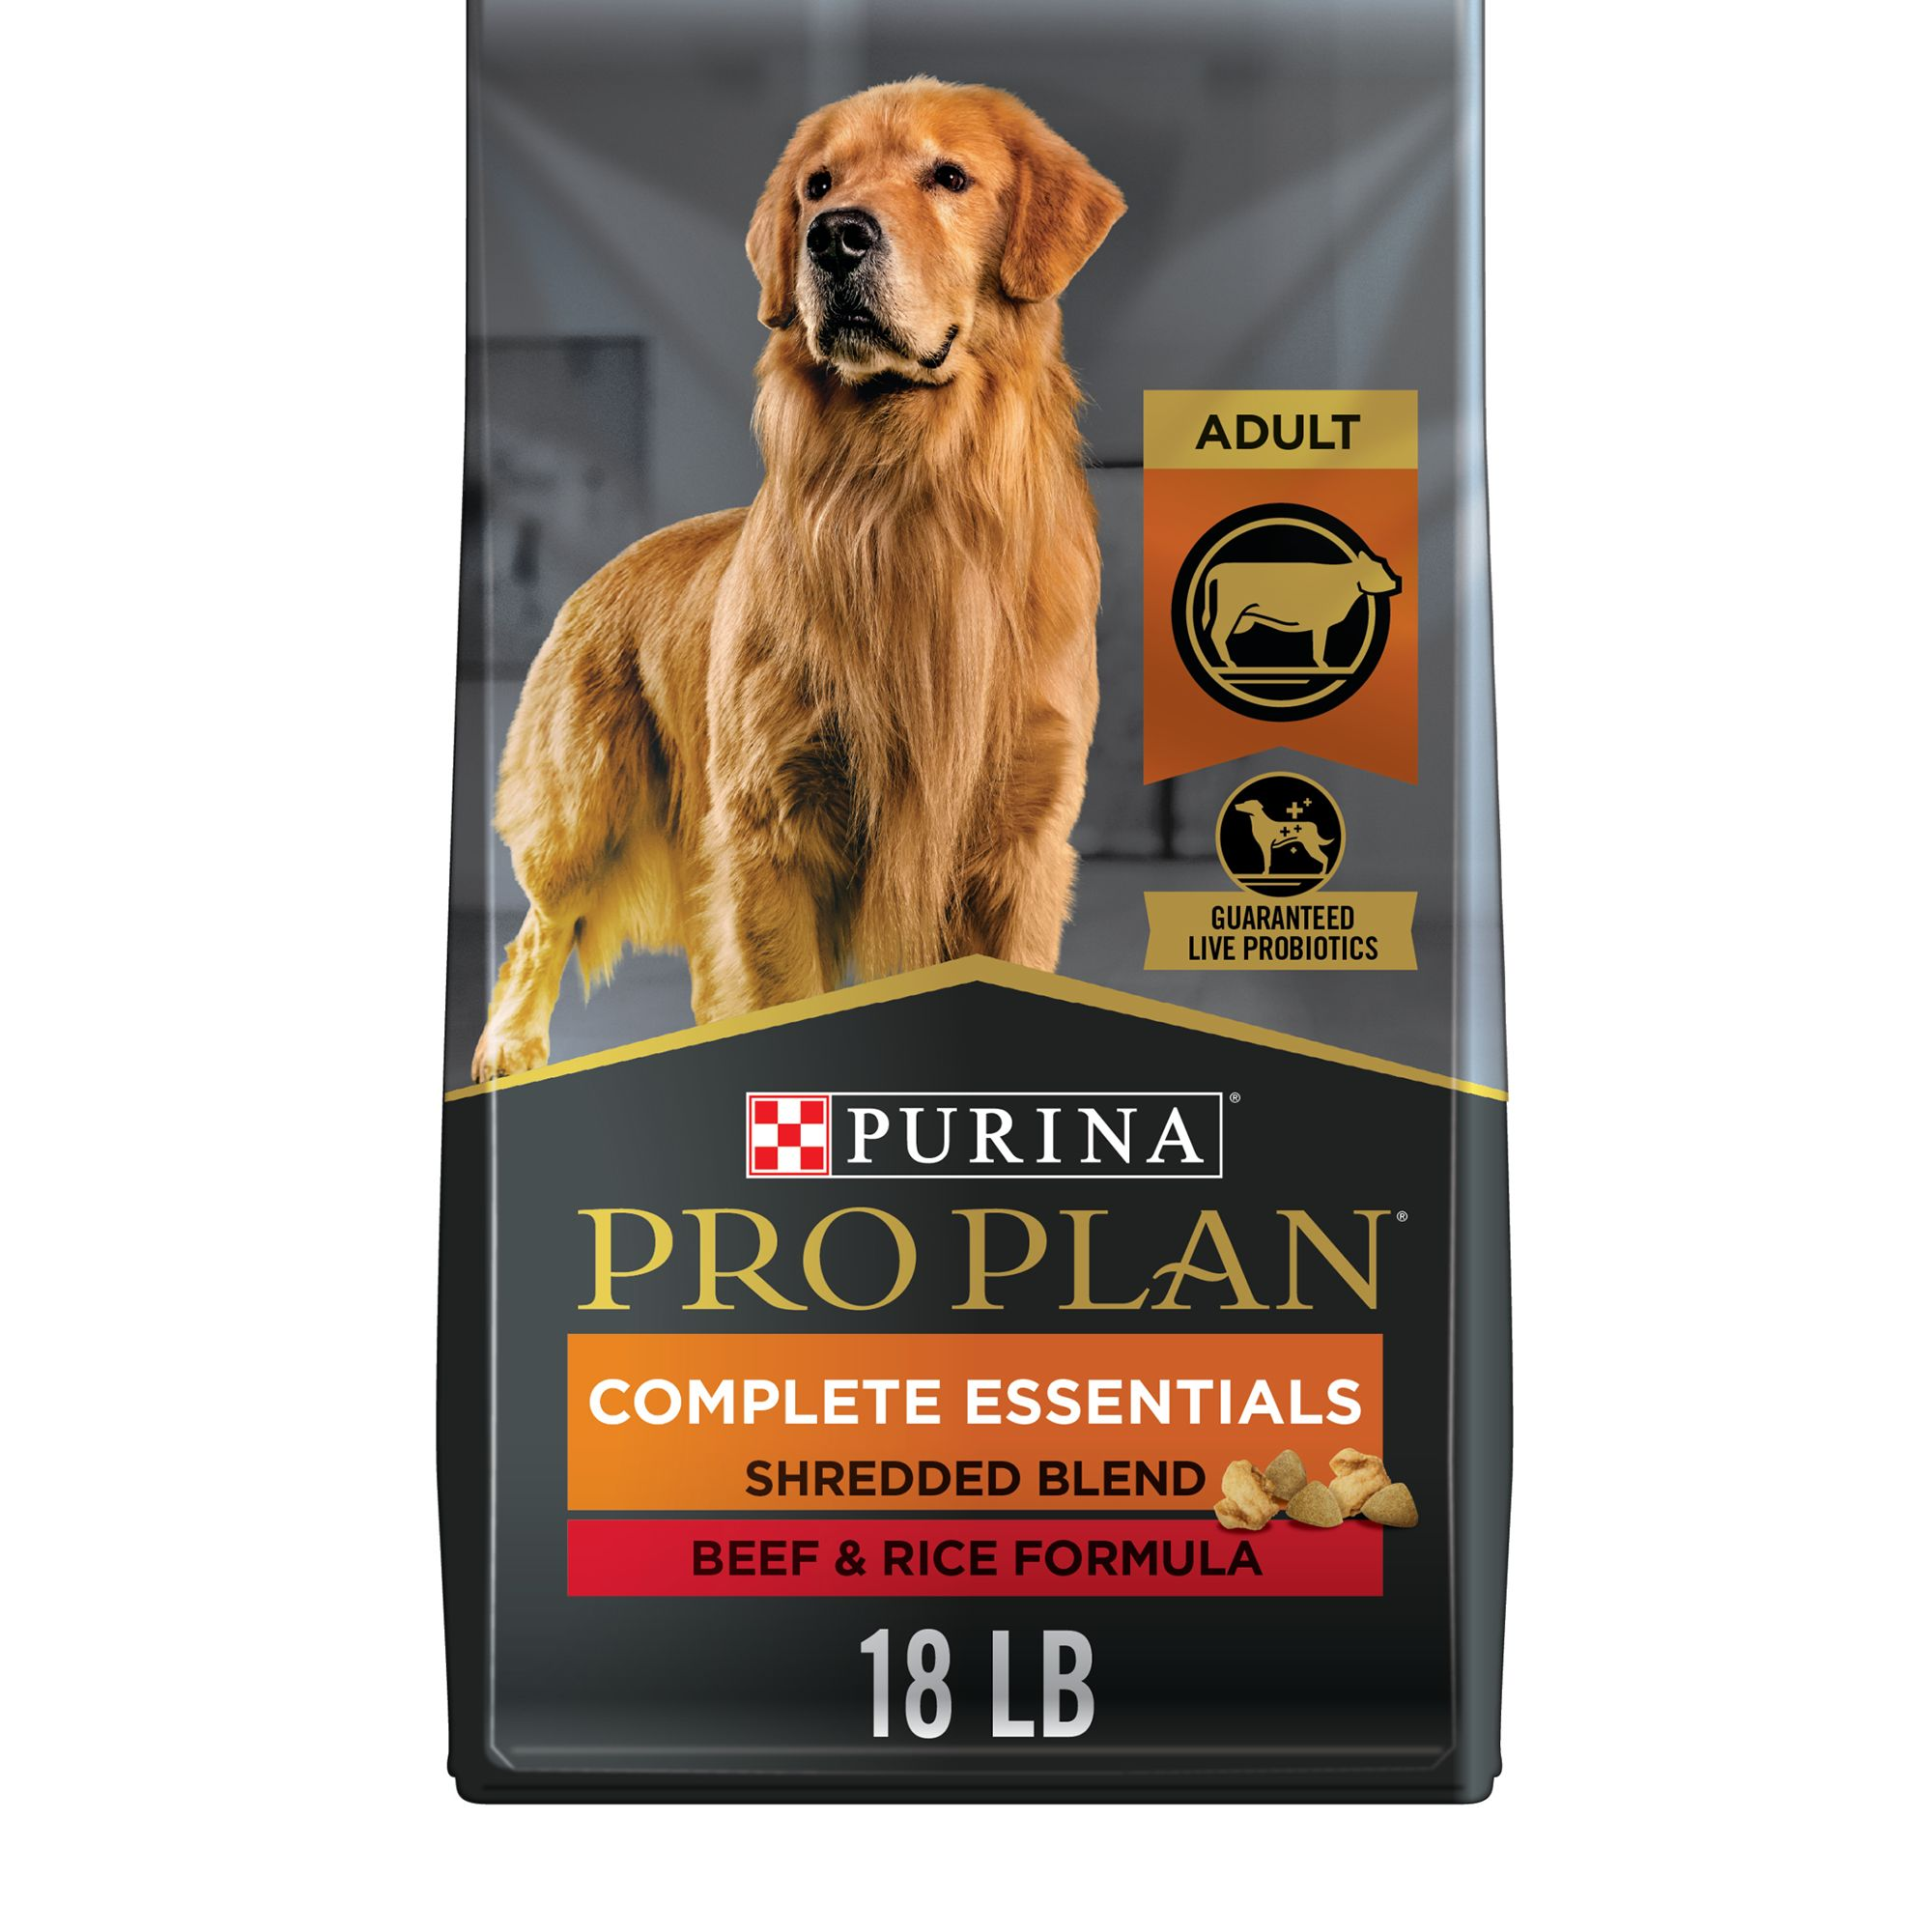 Purina Pro Plan Adult Dog Food Size 18 Lb